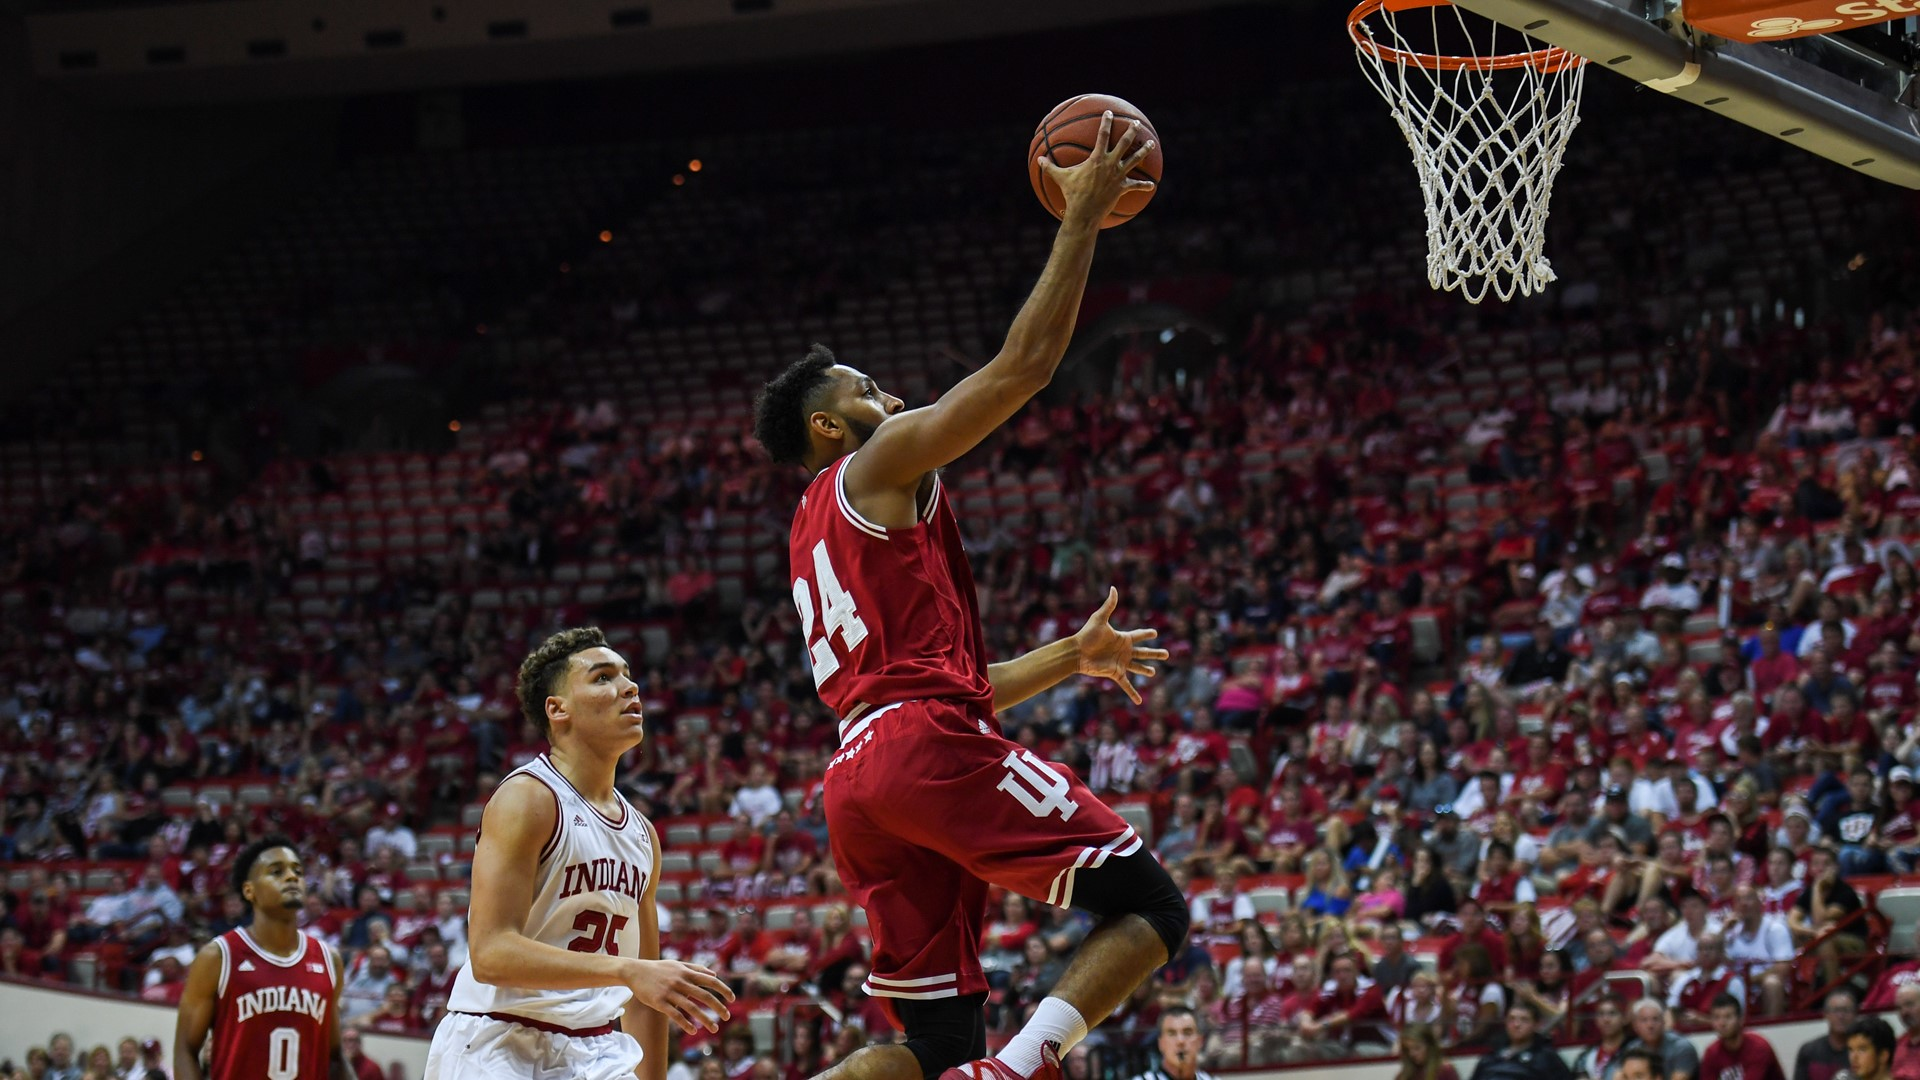 vijay blackmon - men's basketball - indiana university athletics